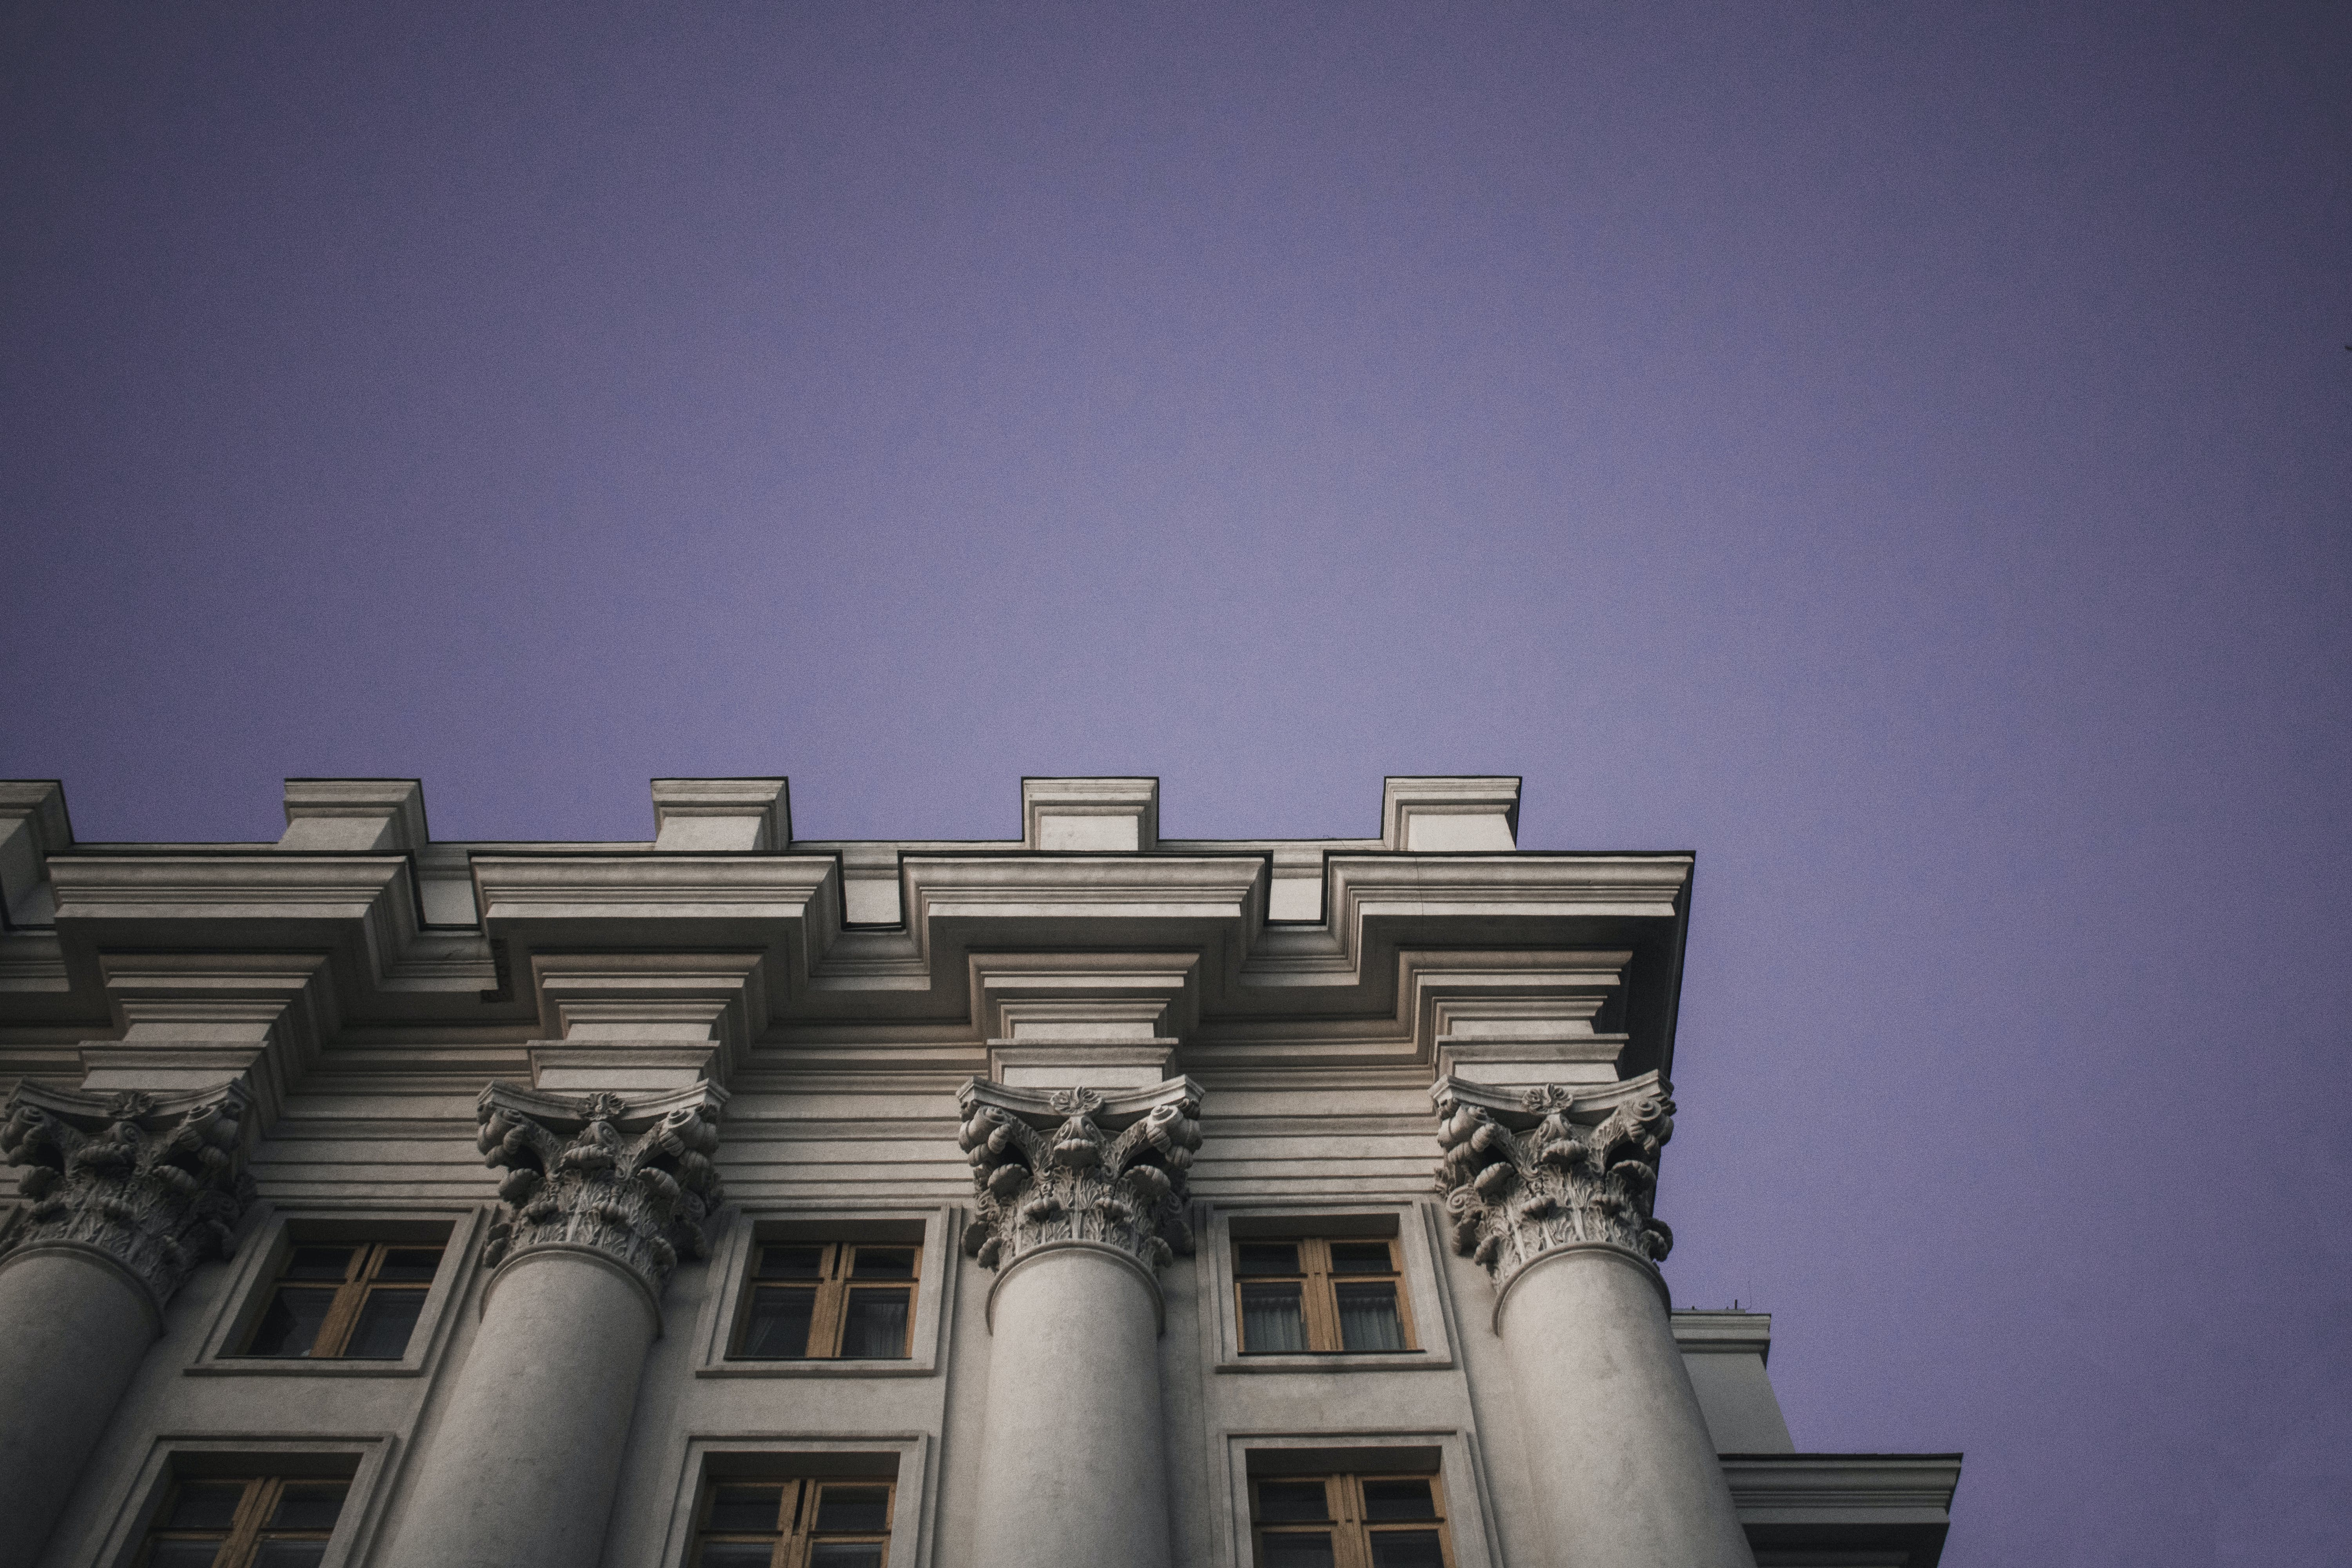 Gray Concrete Building in Worm's-eye View